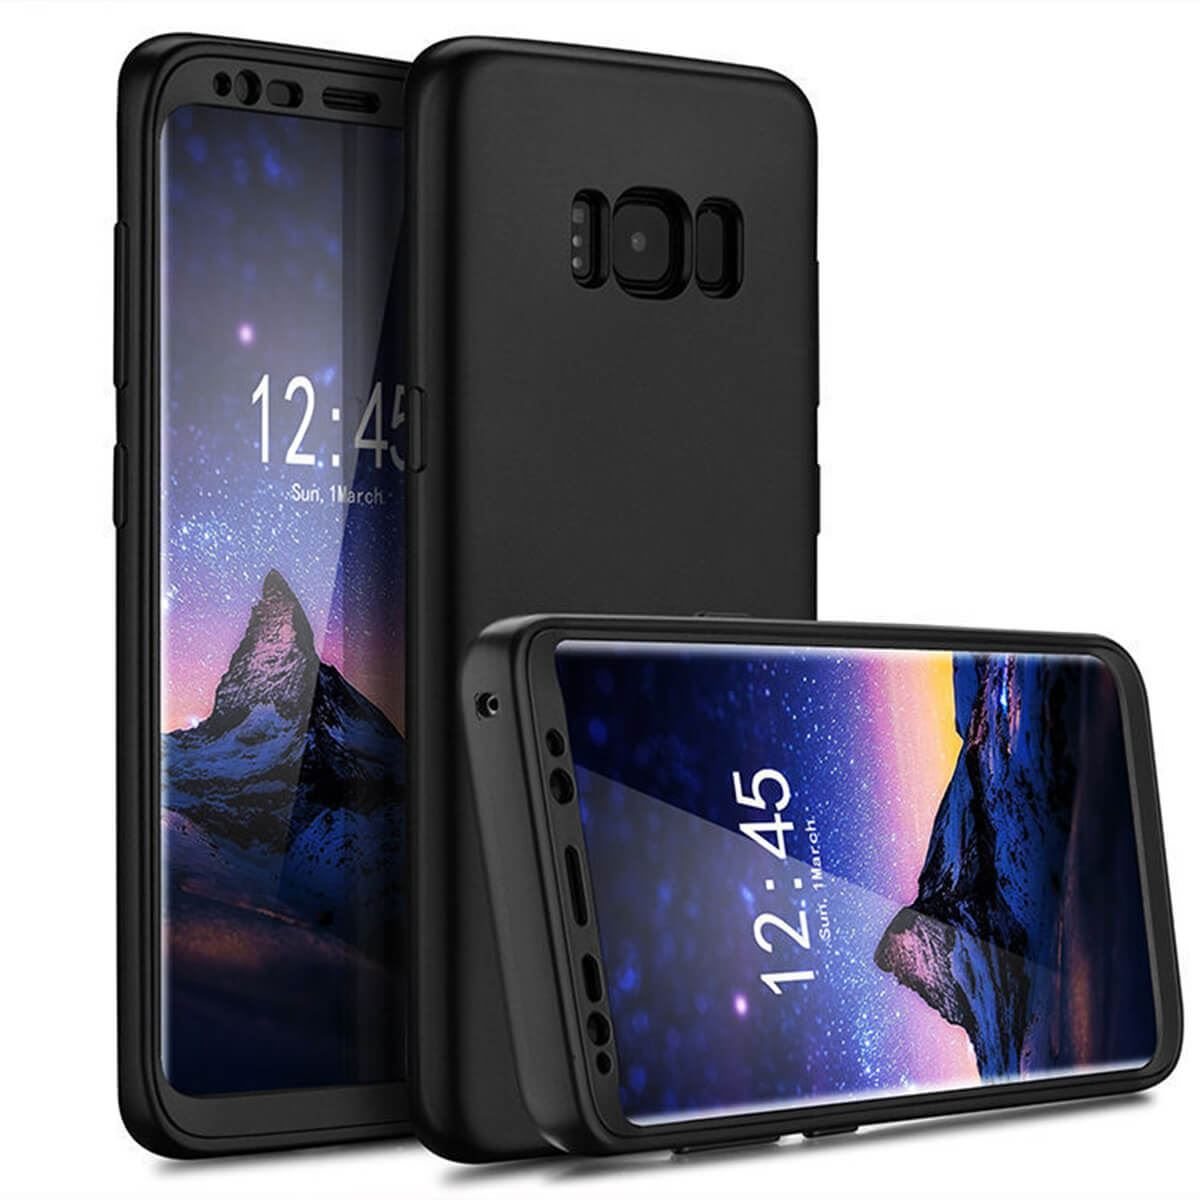 New-ShockProof-Hybrid-360-TPU-Thin-Case-Cover-For-Samsung-Galaxy-S7-edge-S8-S9 miniature 20